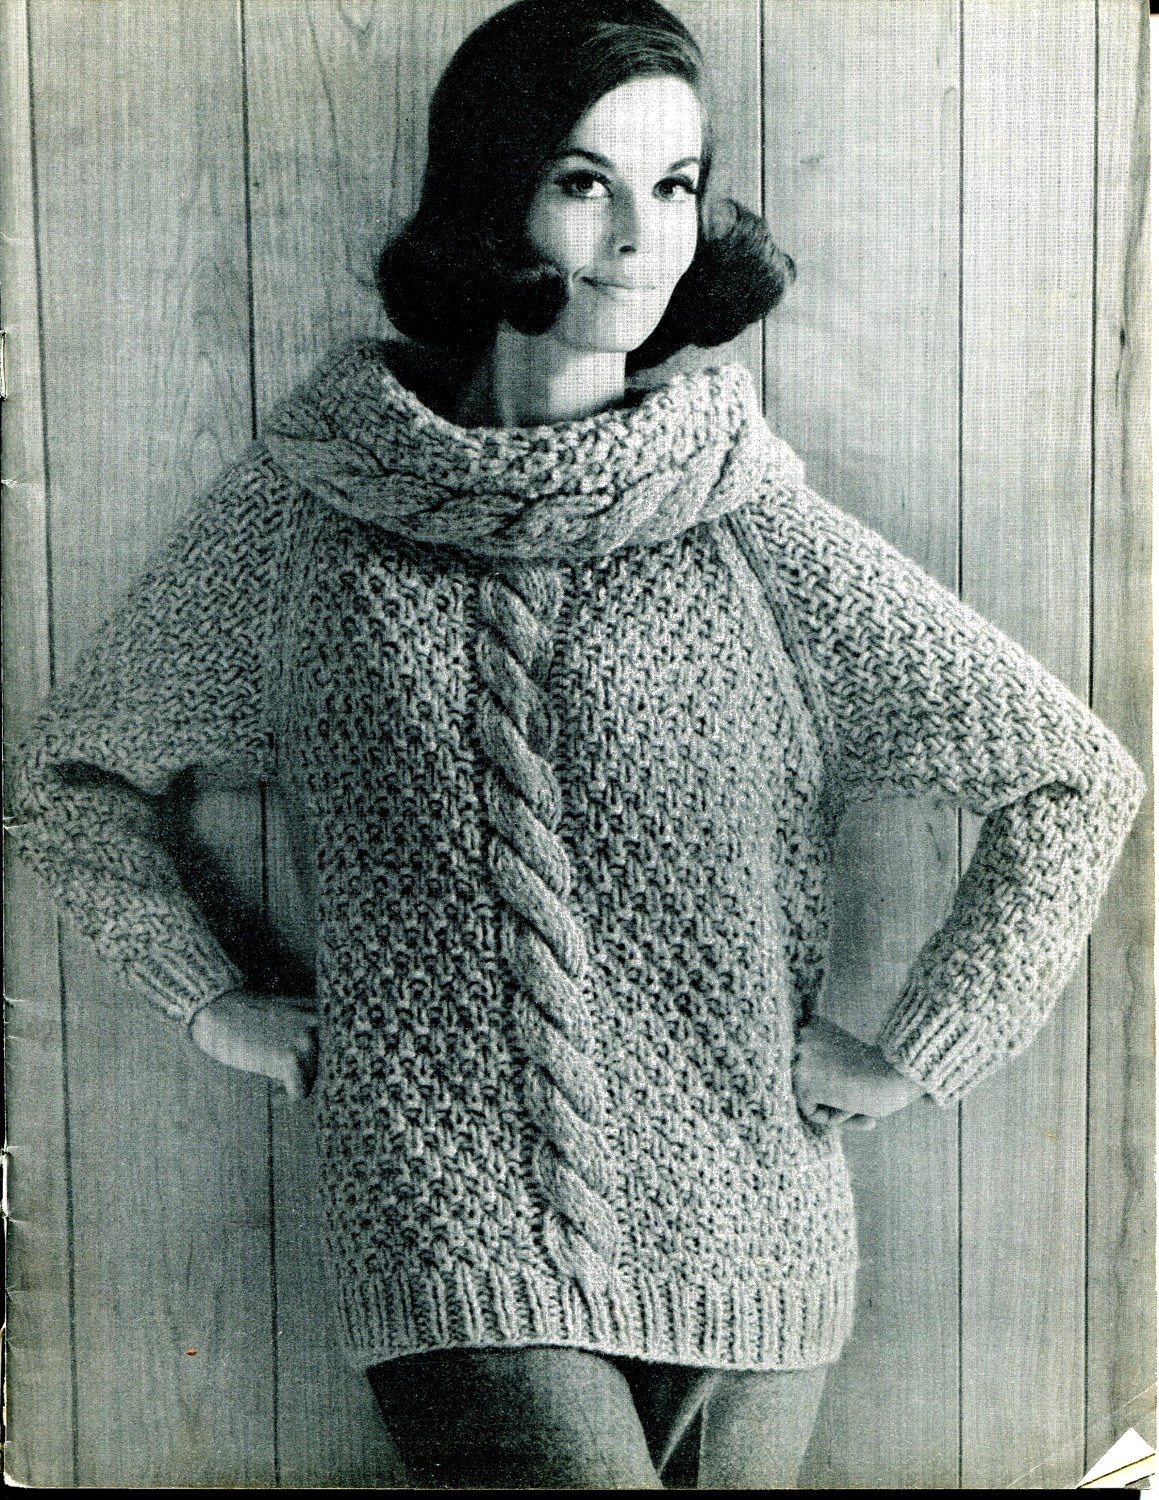 Chunky Cable Knit Cowl Sweater Pattern